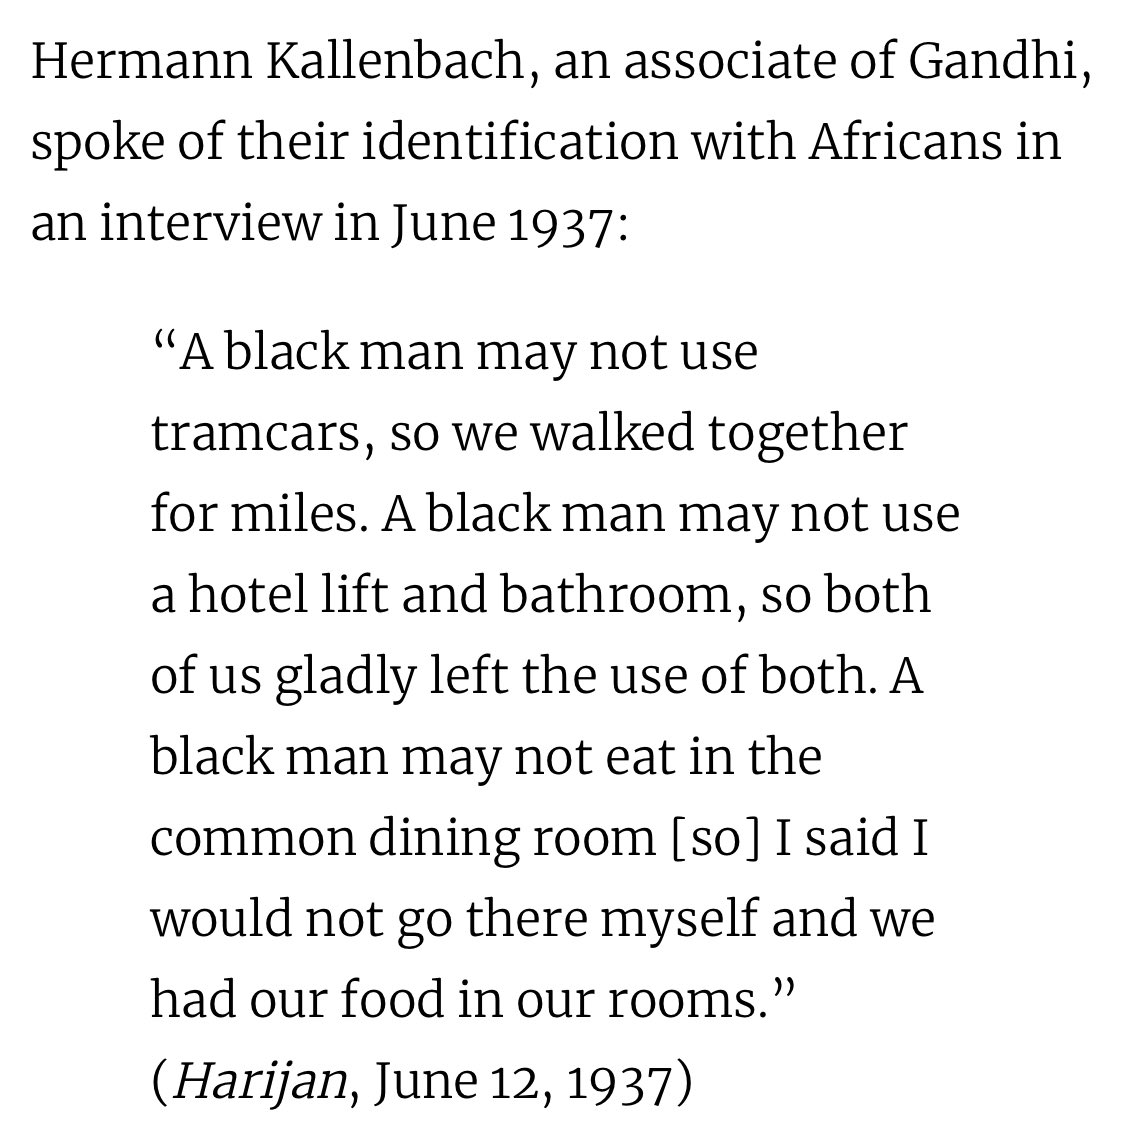 He had plenty on his own plate working to bring freedom to India, no one man should be held accountable for all the injustices in the world tho. Tru that he couldve done more for black people while he was in south africa, but he showed support multiple times later on. Just a few: pic.twitter.com/xFysODaFTc